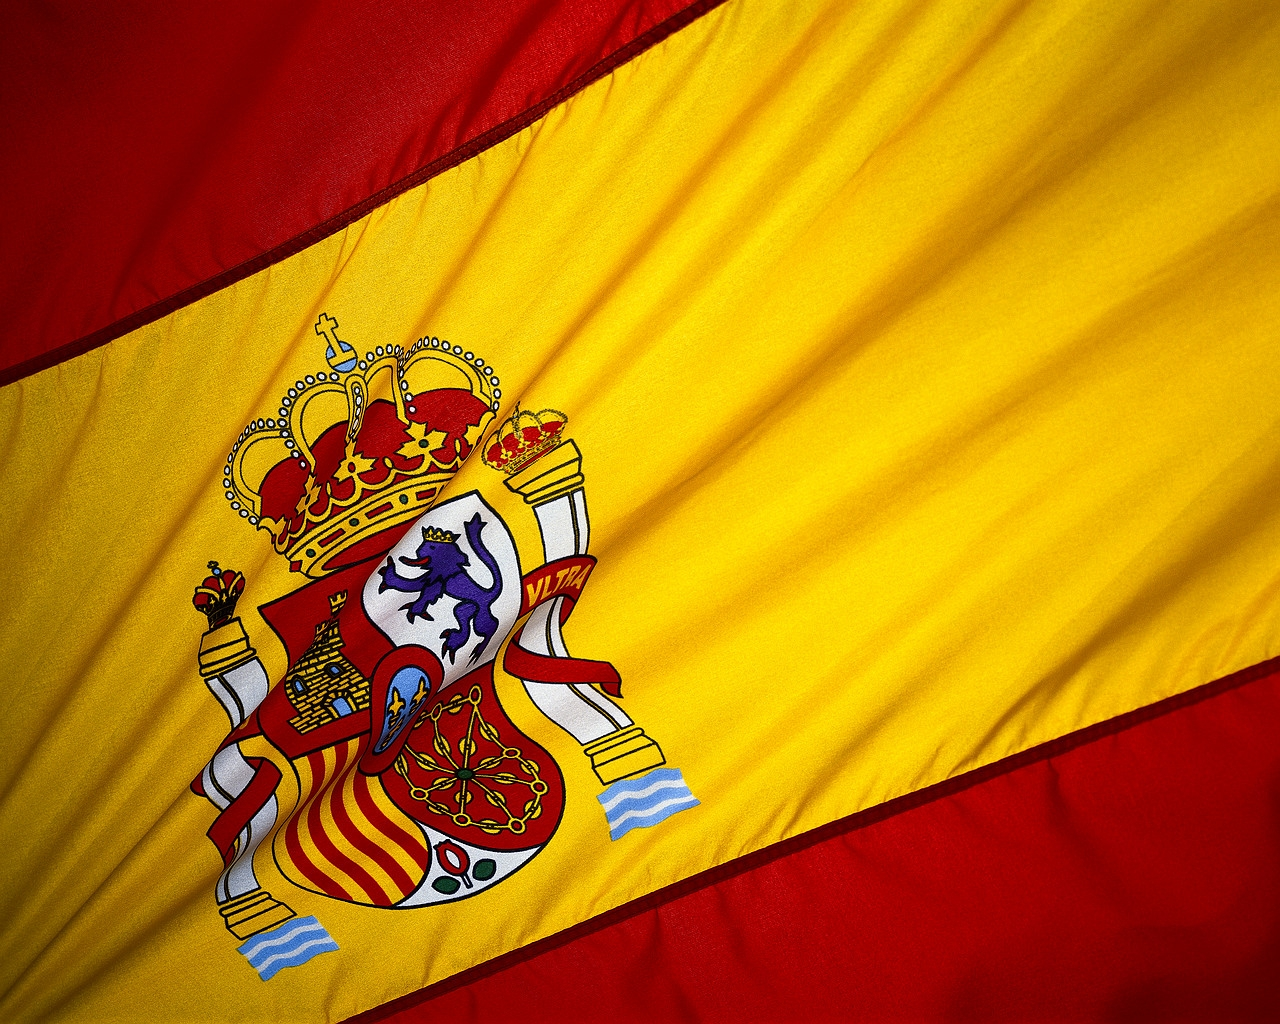 http://carmelmfl.files.wordpress.com/2009/04/spanish-flag2.jpg